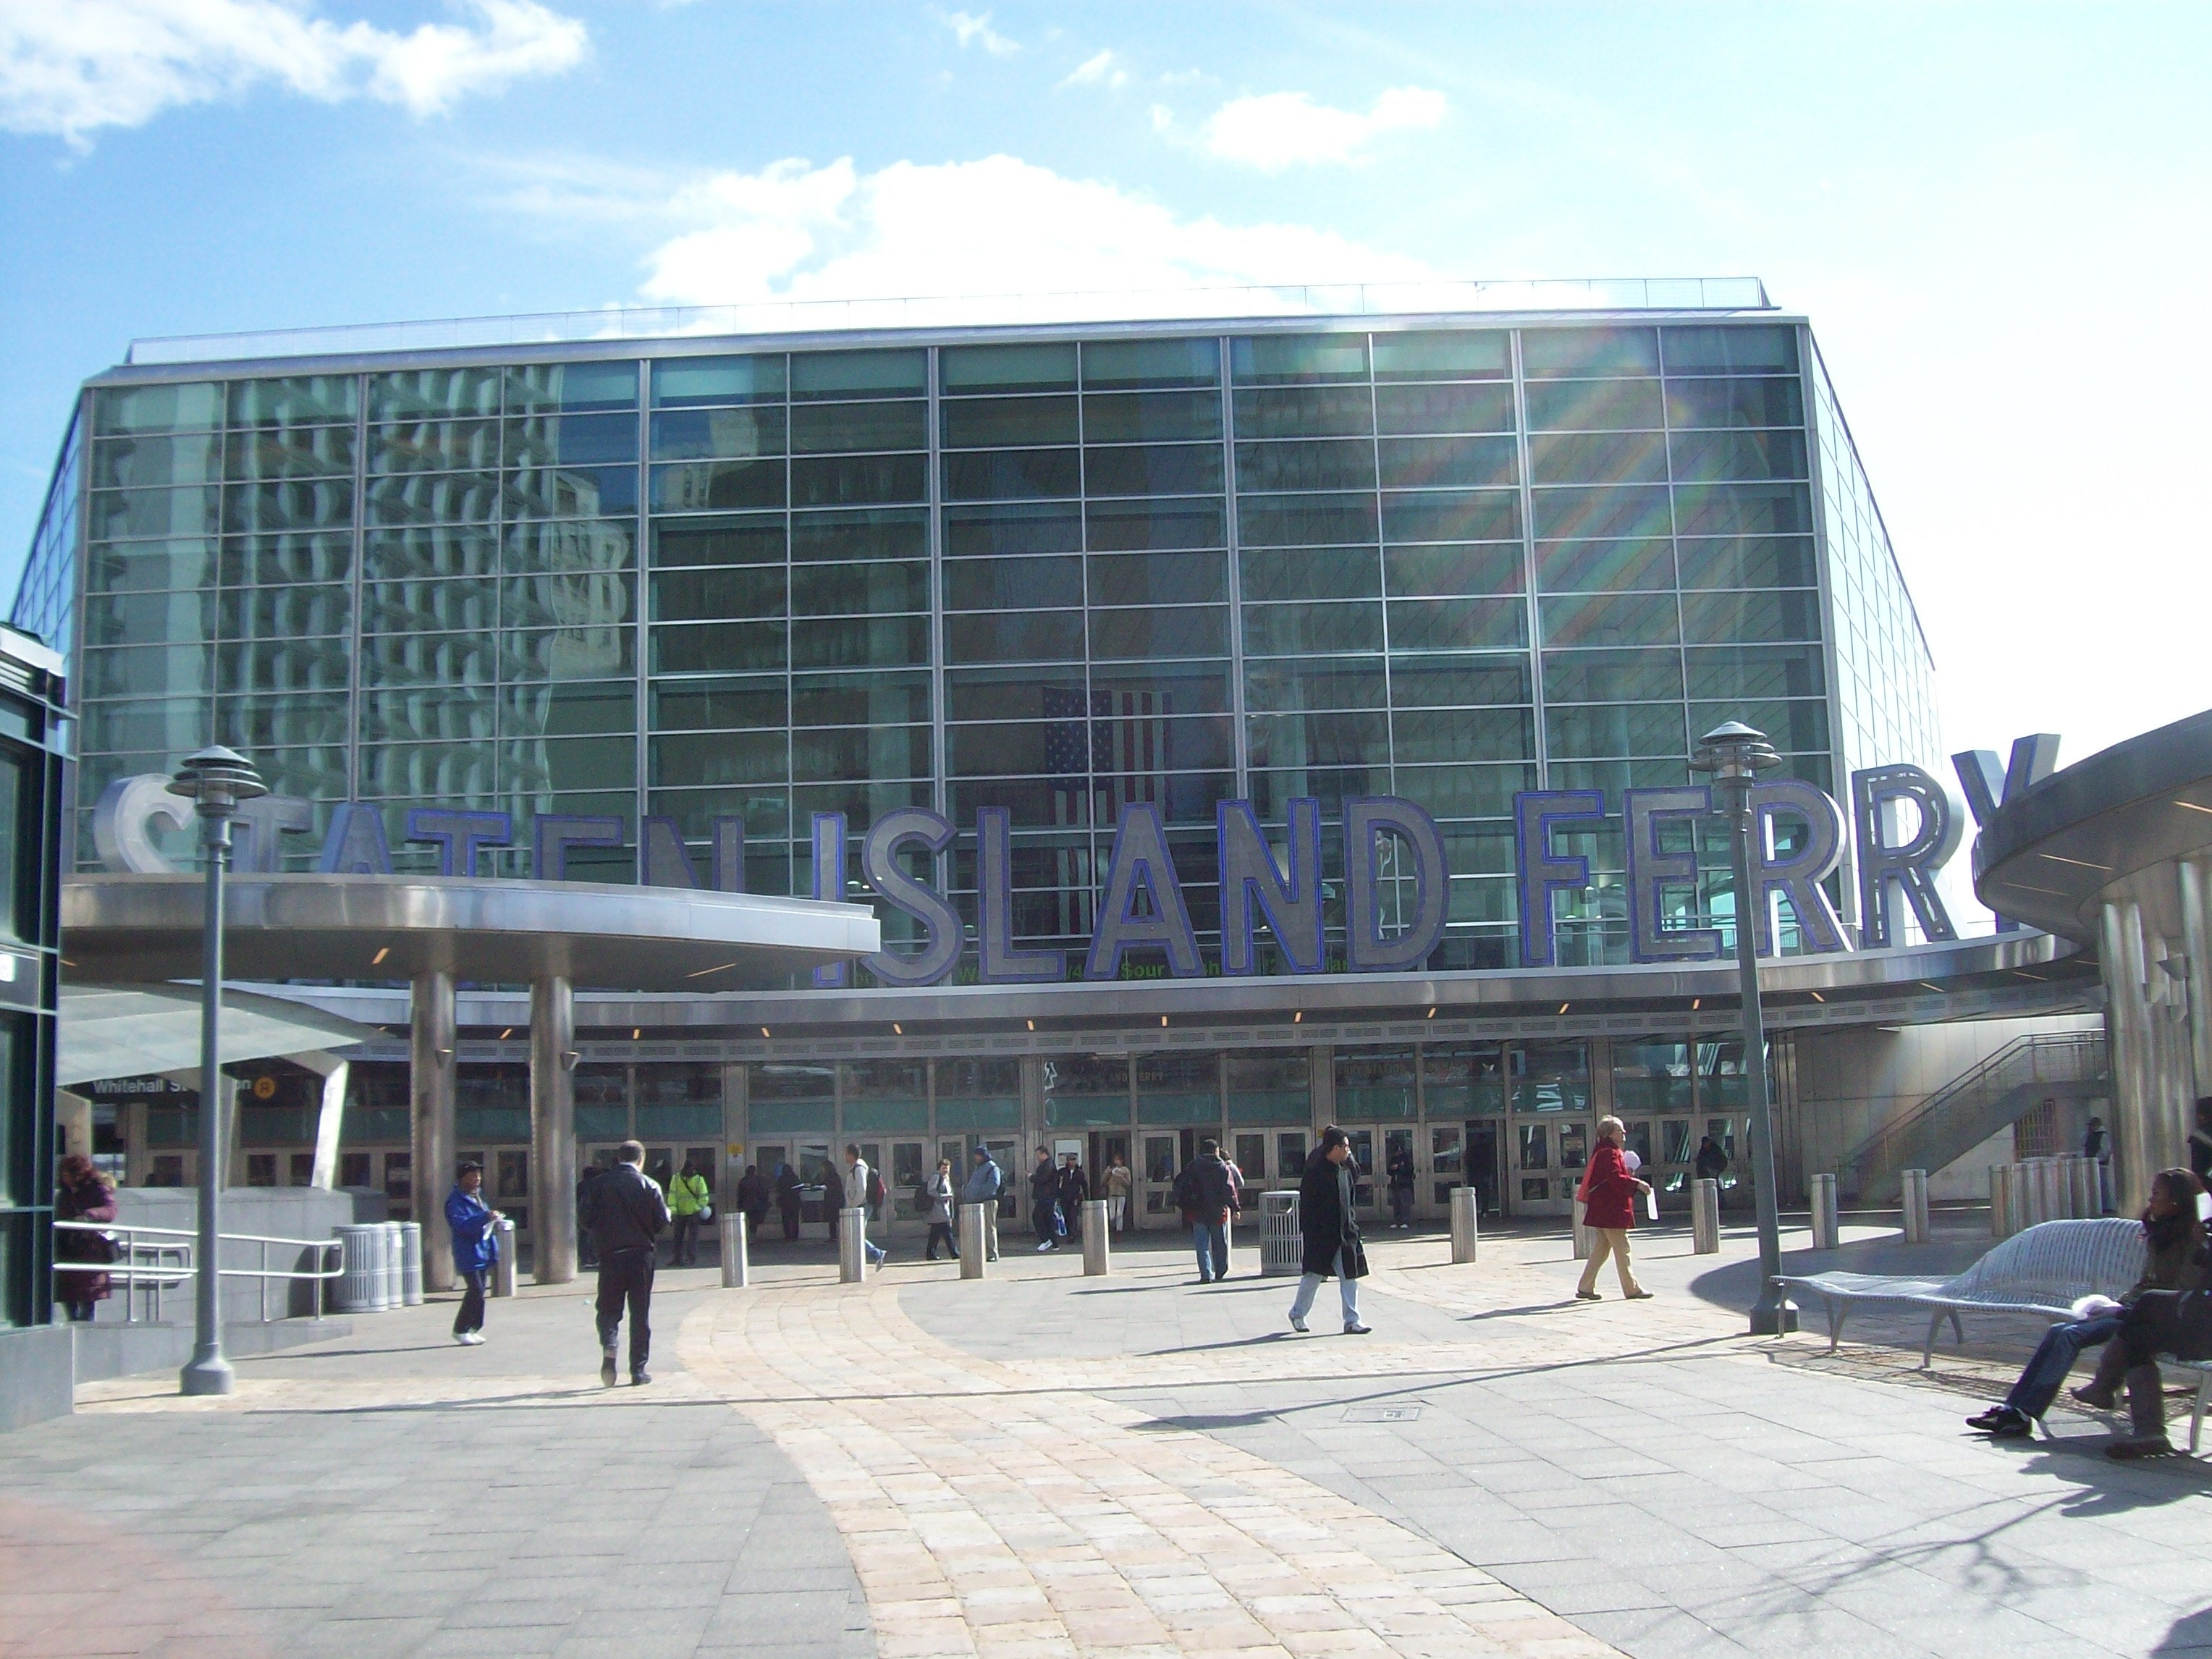 Estadio en Staten Island Ferry